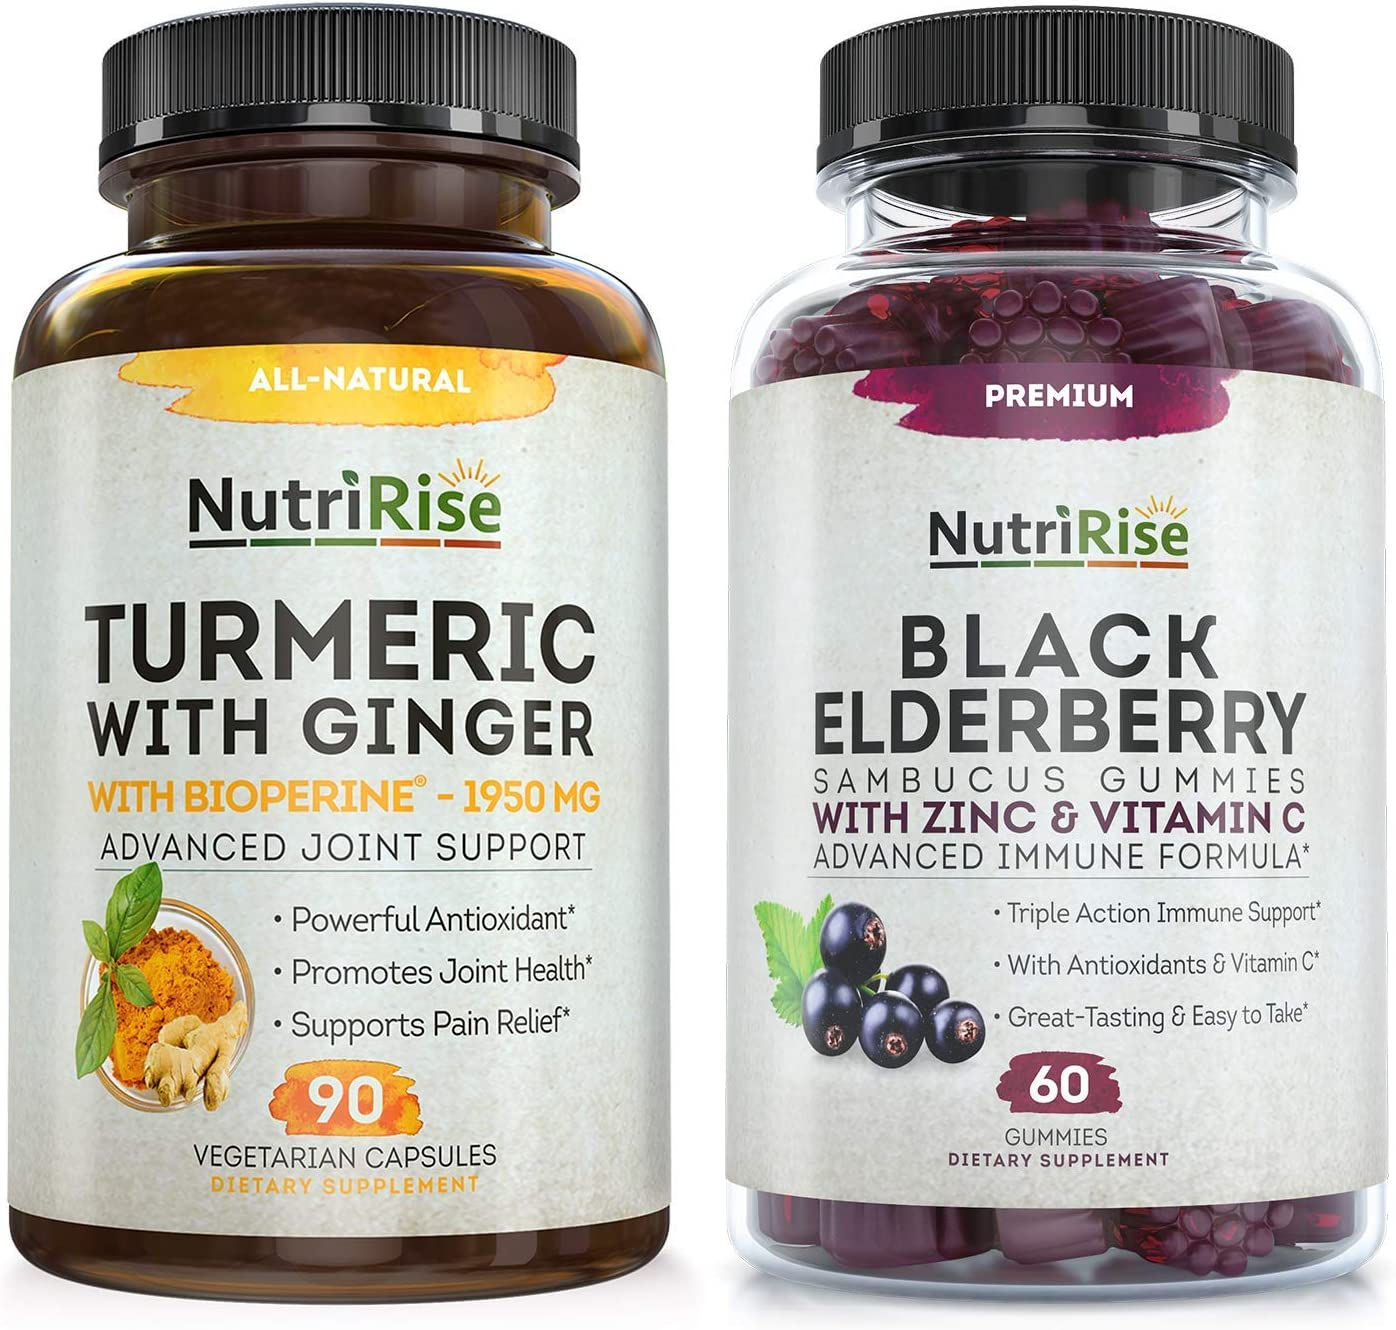 Sambucus Elderberry Gummies with Zinc & Vitamin C + Turmeric with Ginger Capsules: Vegan Combo for Immune Support. Powerful Antioxidants for Natural Cell Protection, Joint Pain Relief & Beautiful Skin